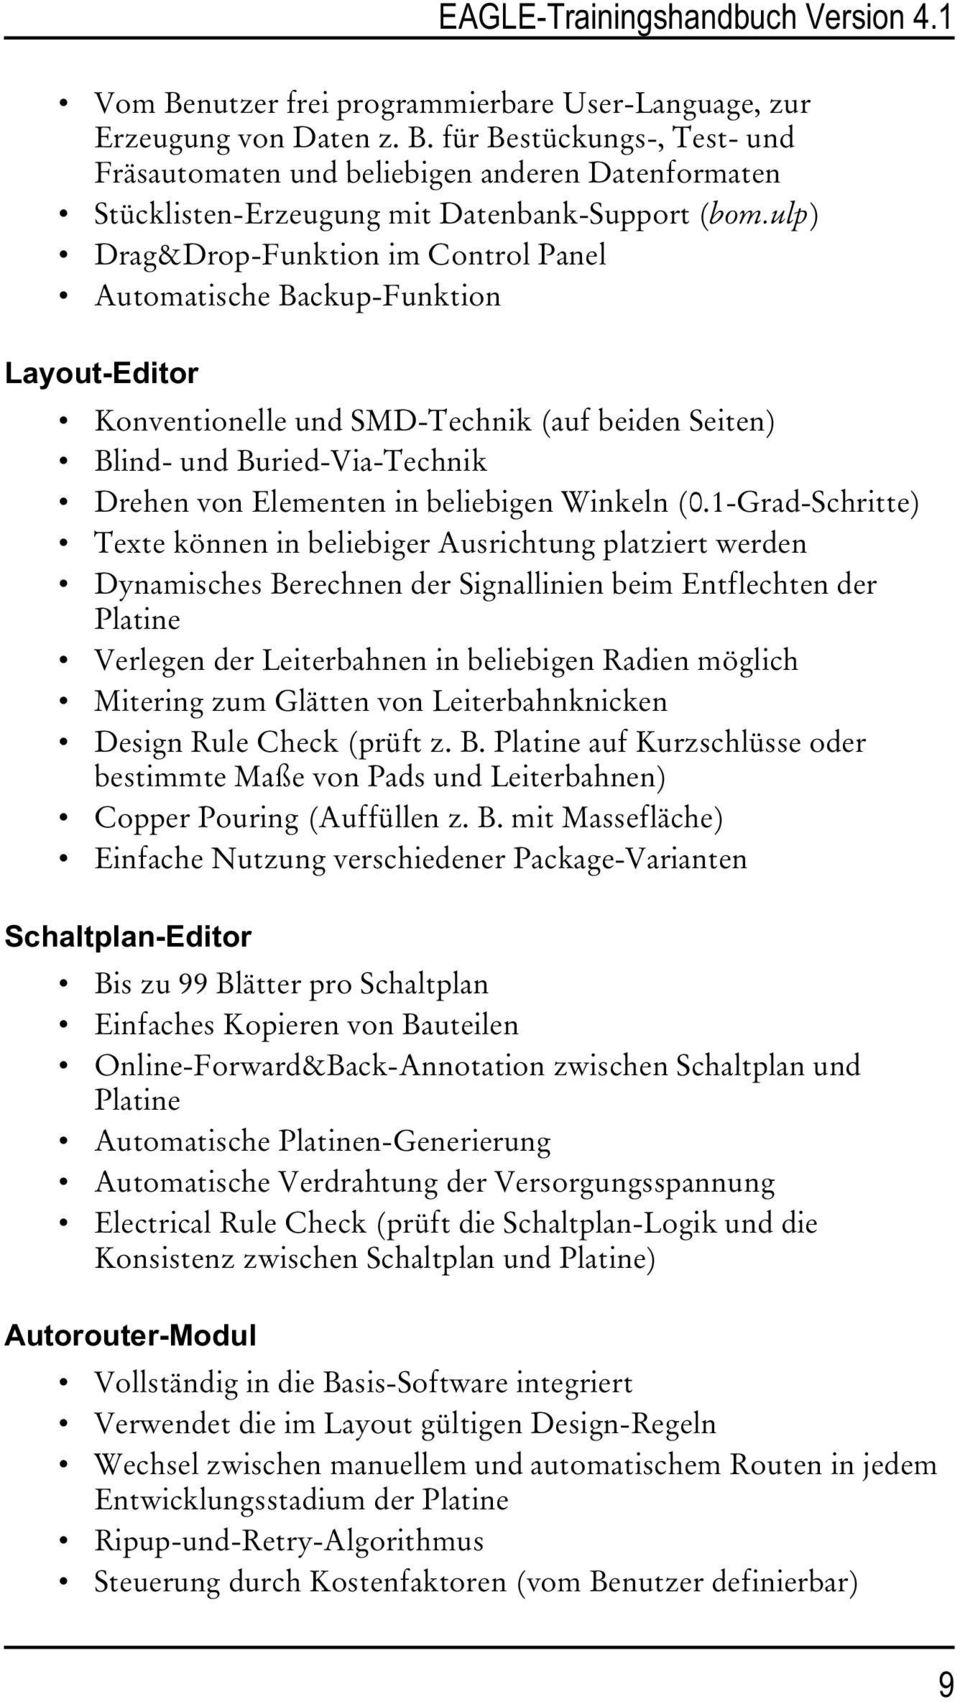 eagle trainingshandbuch version 4 1 schaltplan layout autorouter cadsoft computer gmbh pdf. Black Bedroom Furniture Sets. Home Design Ideas